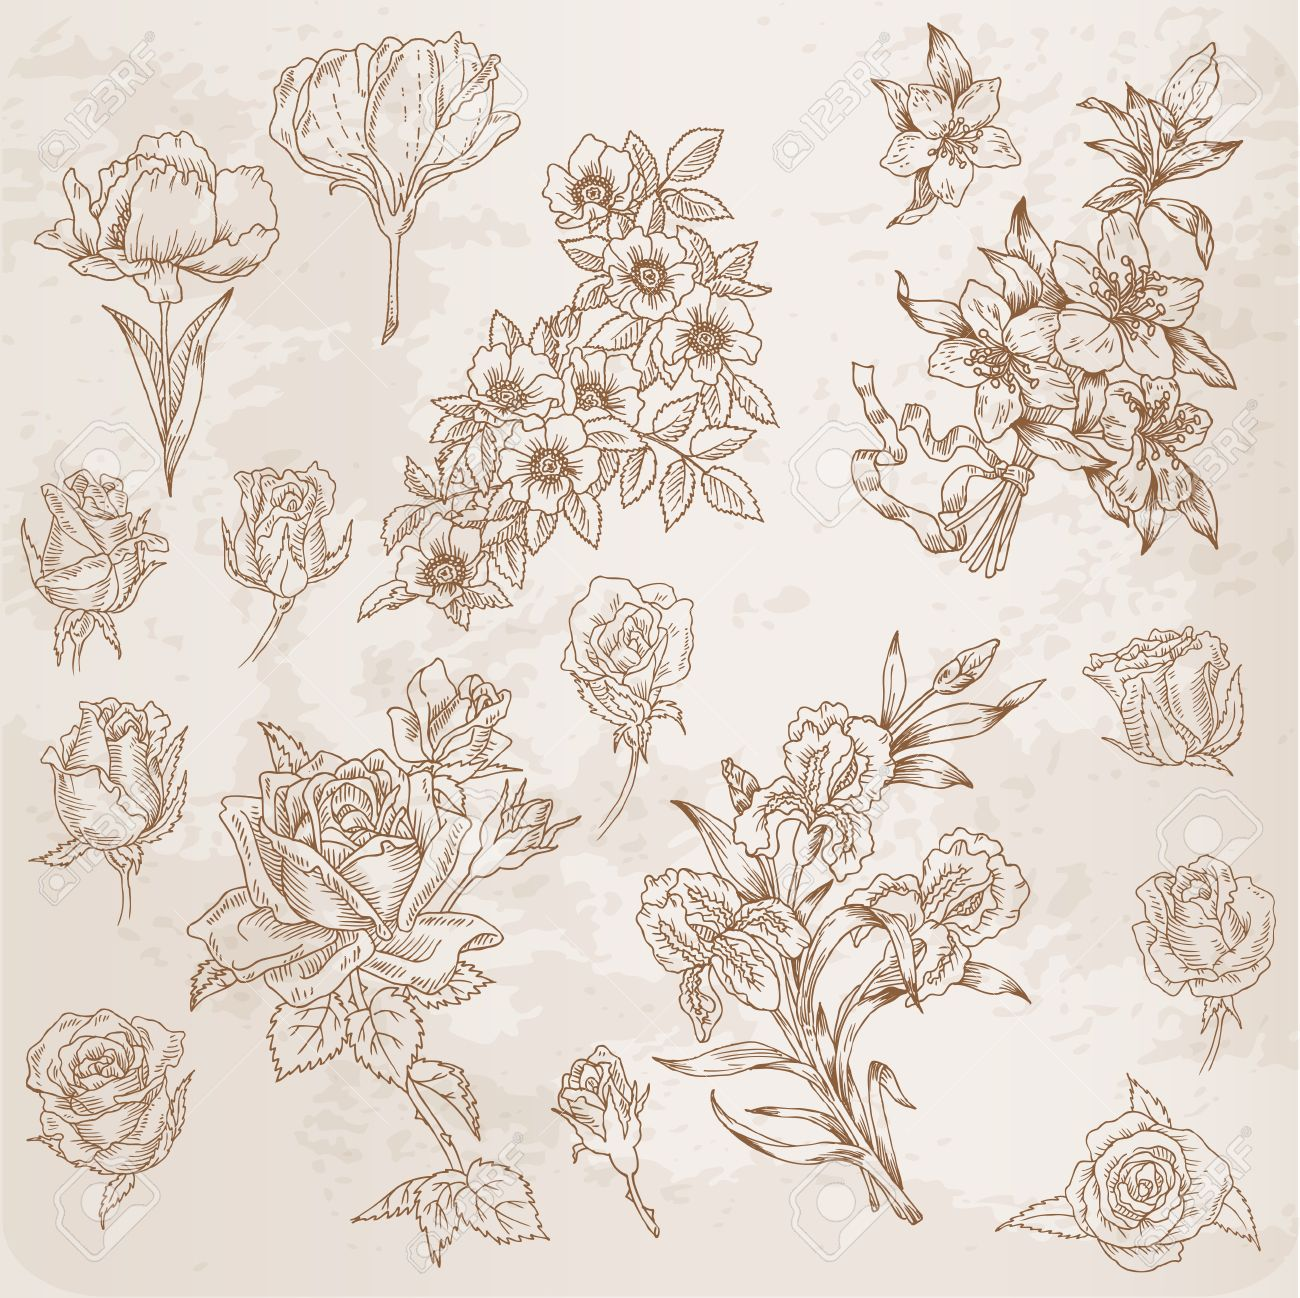 Detailed Hand Drawn Flowers - for scrapbook and design in vector Stock Vector - 13563929